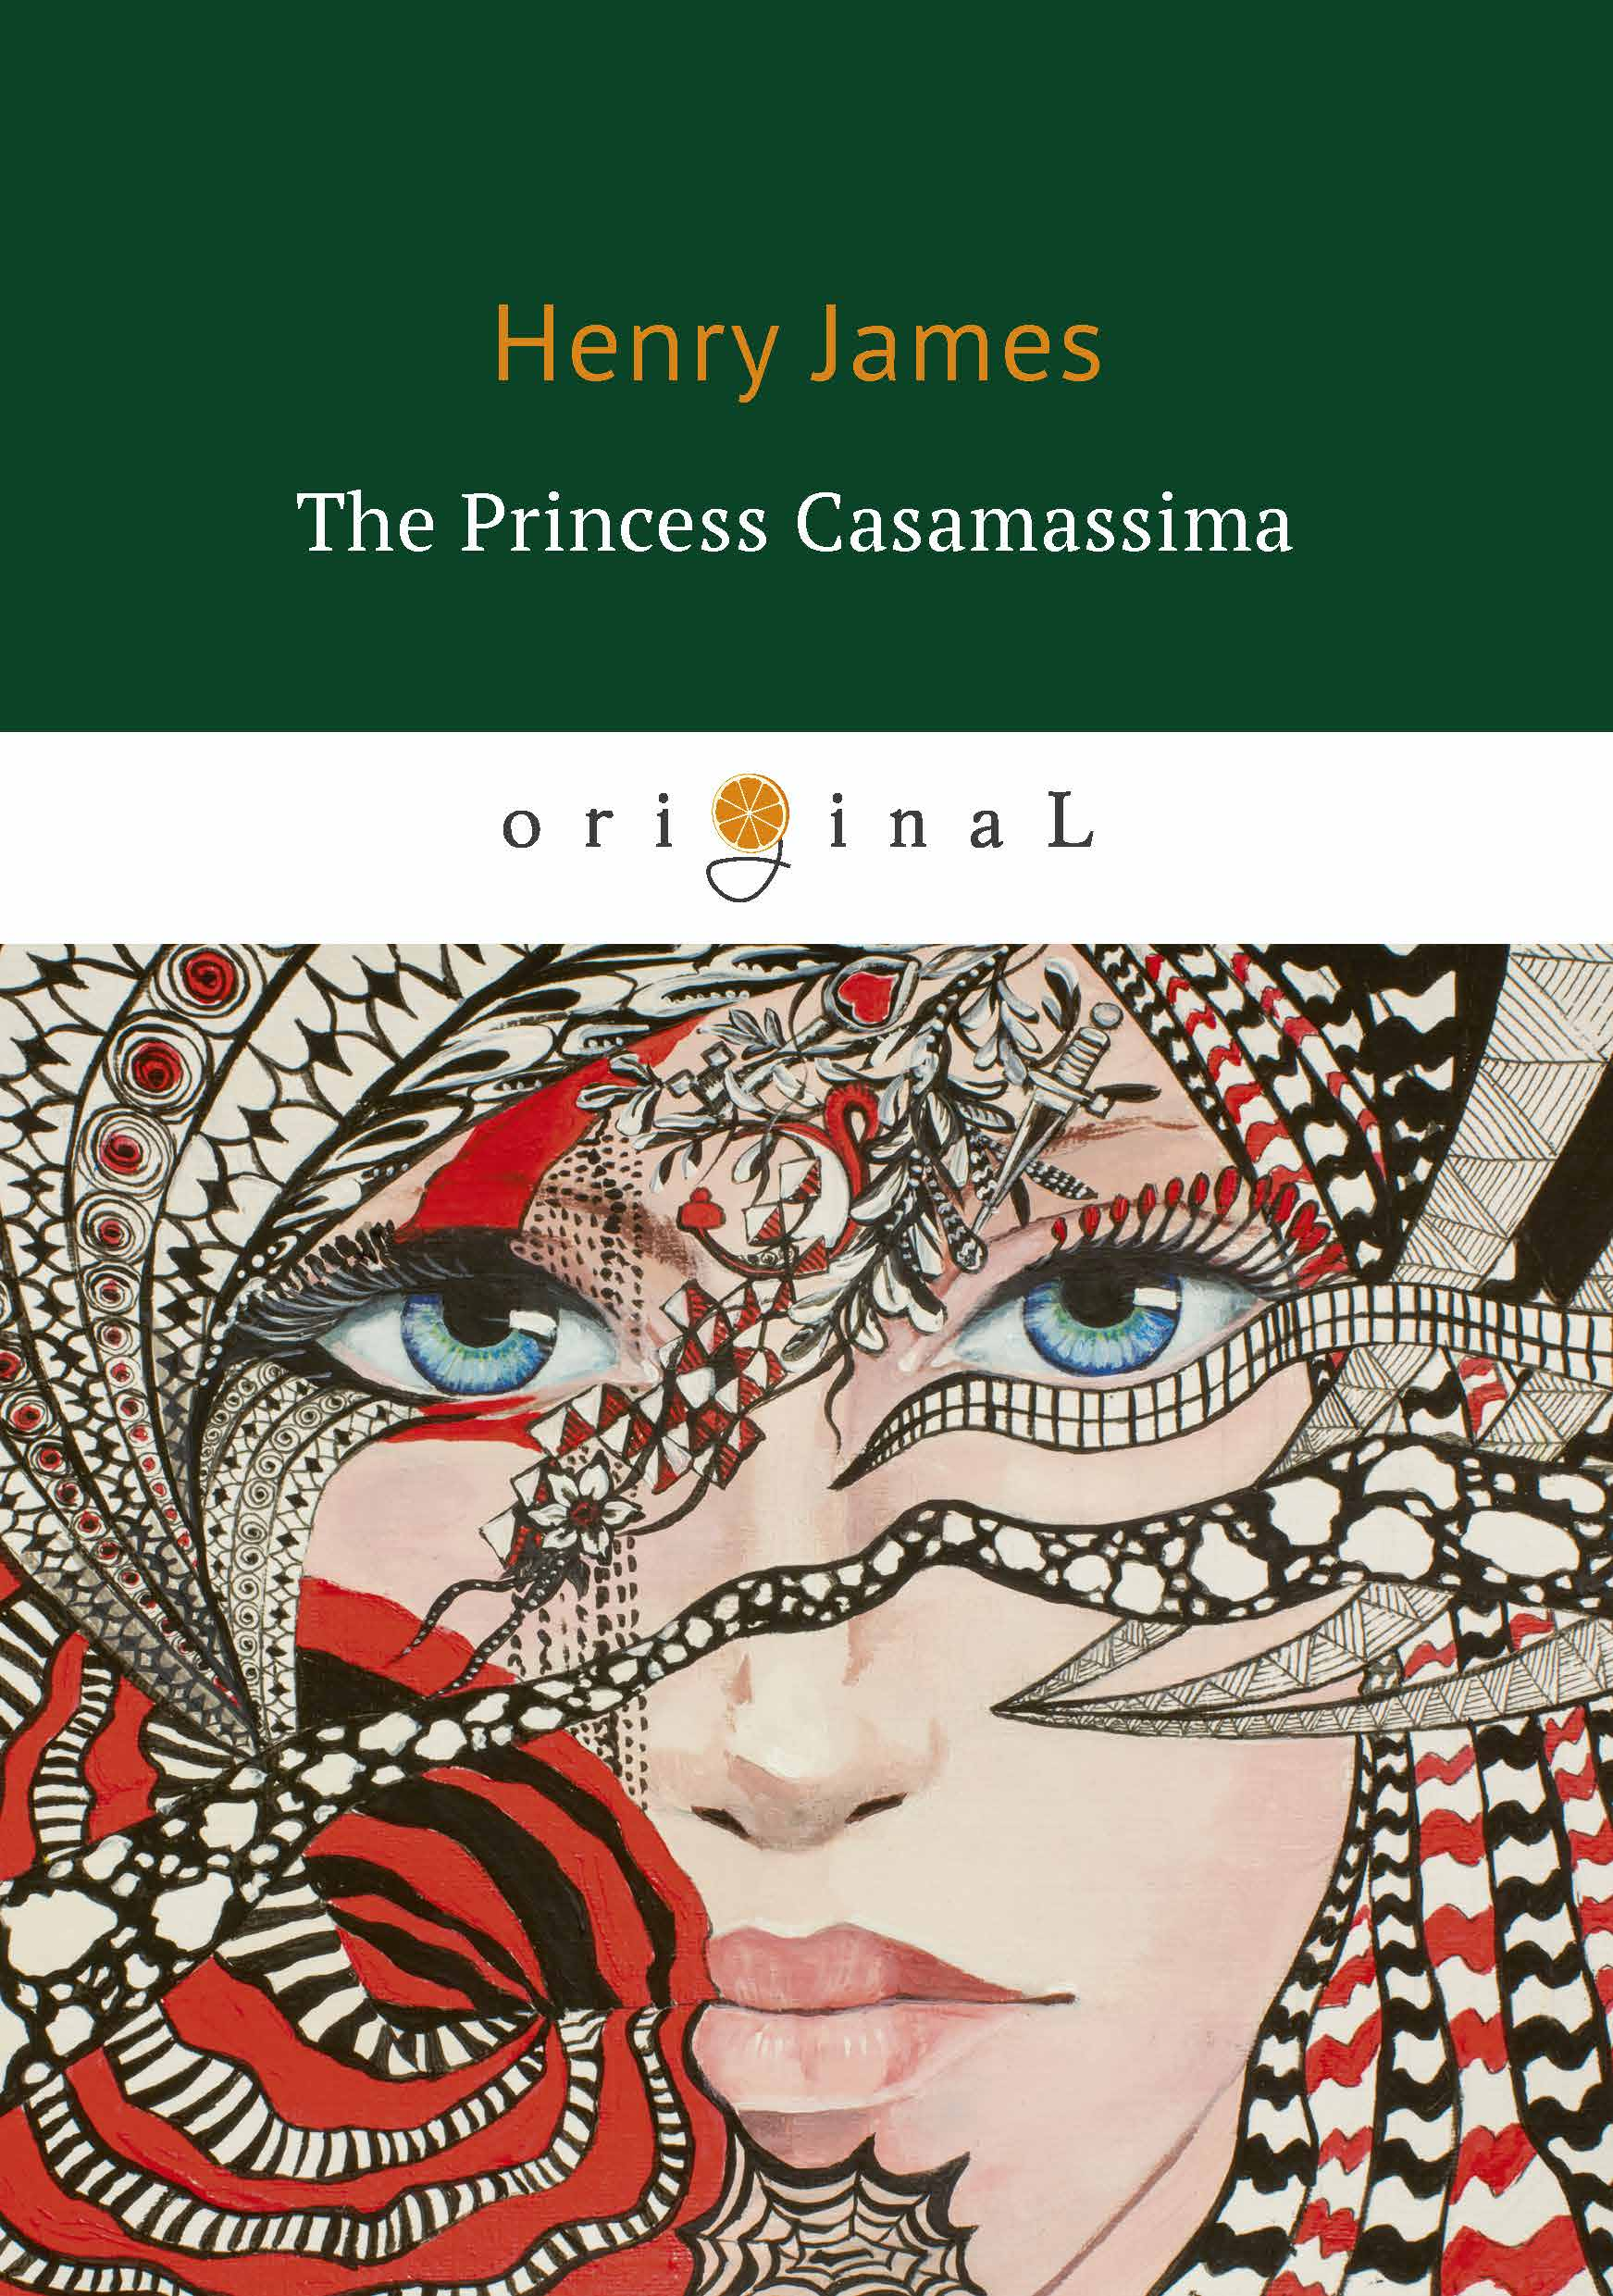 Henry James The Princess Casamassima